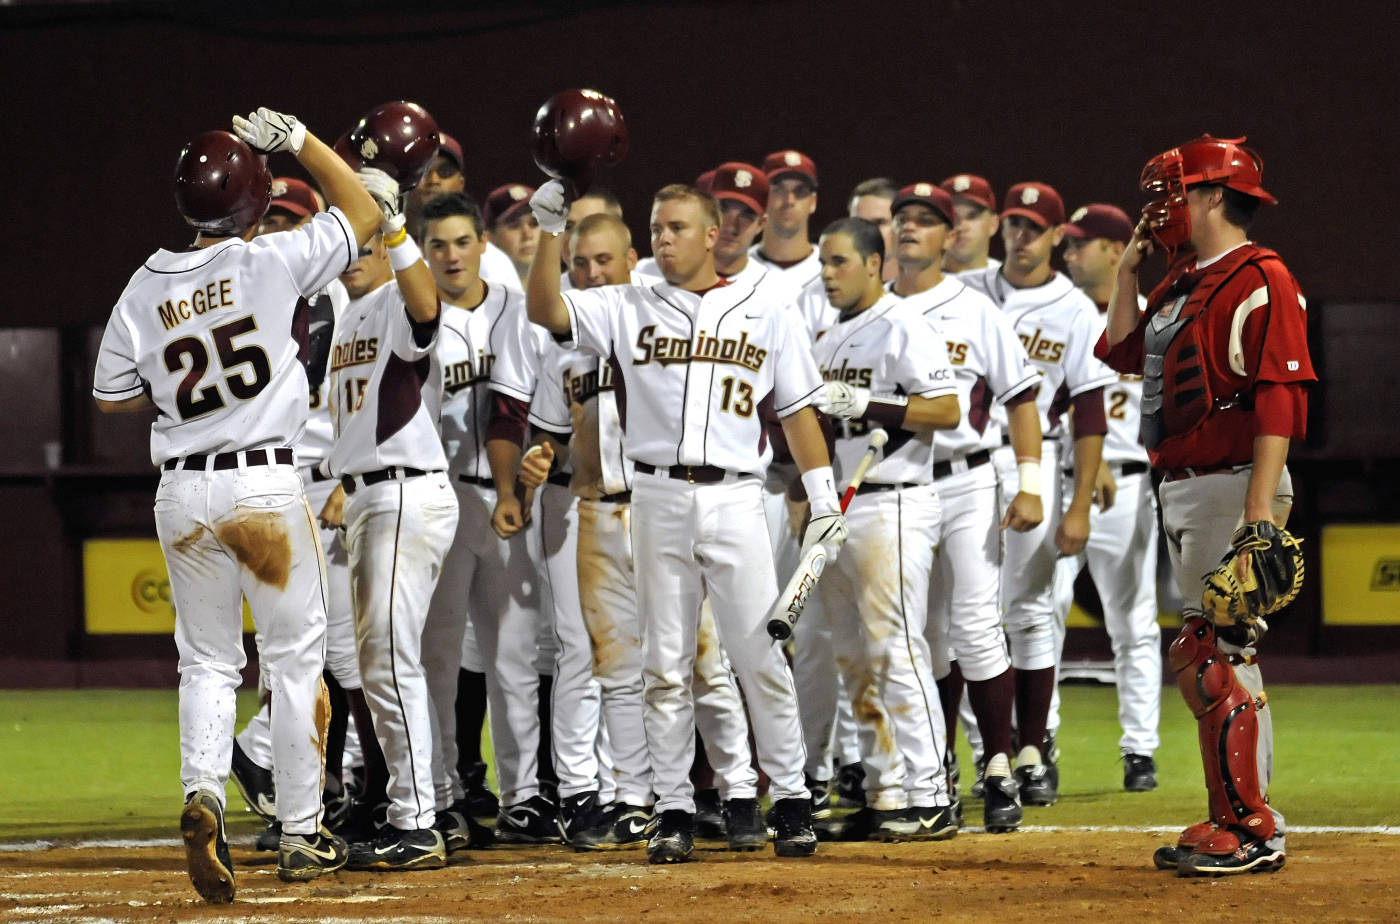 The Seminoles celebrate at the plate after Mike McGee's home run.